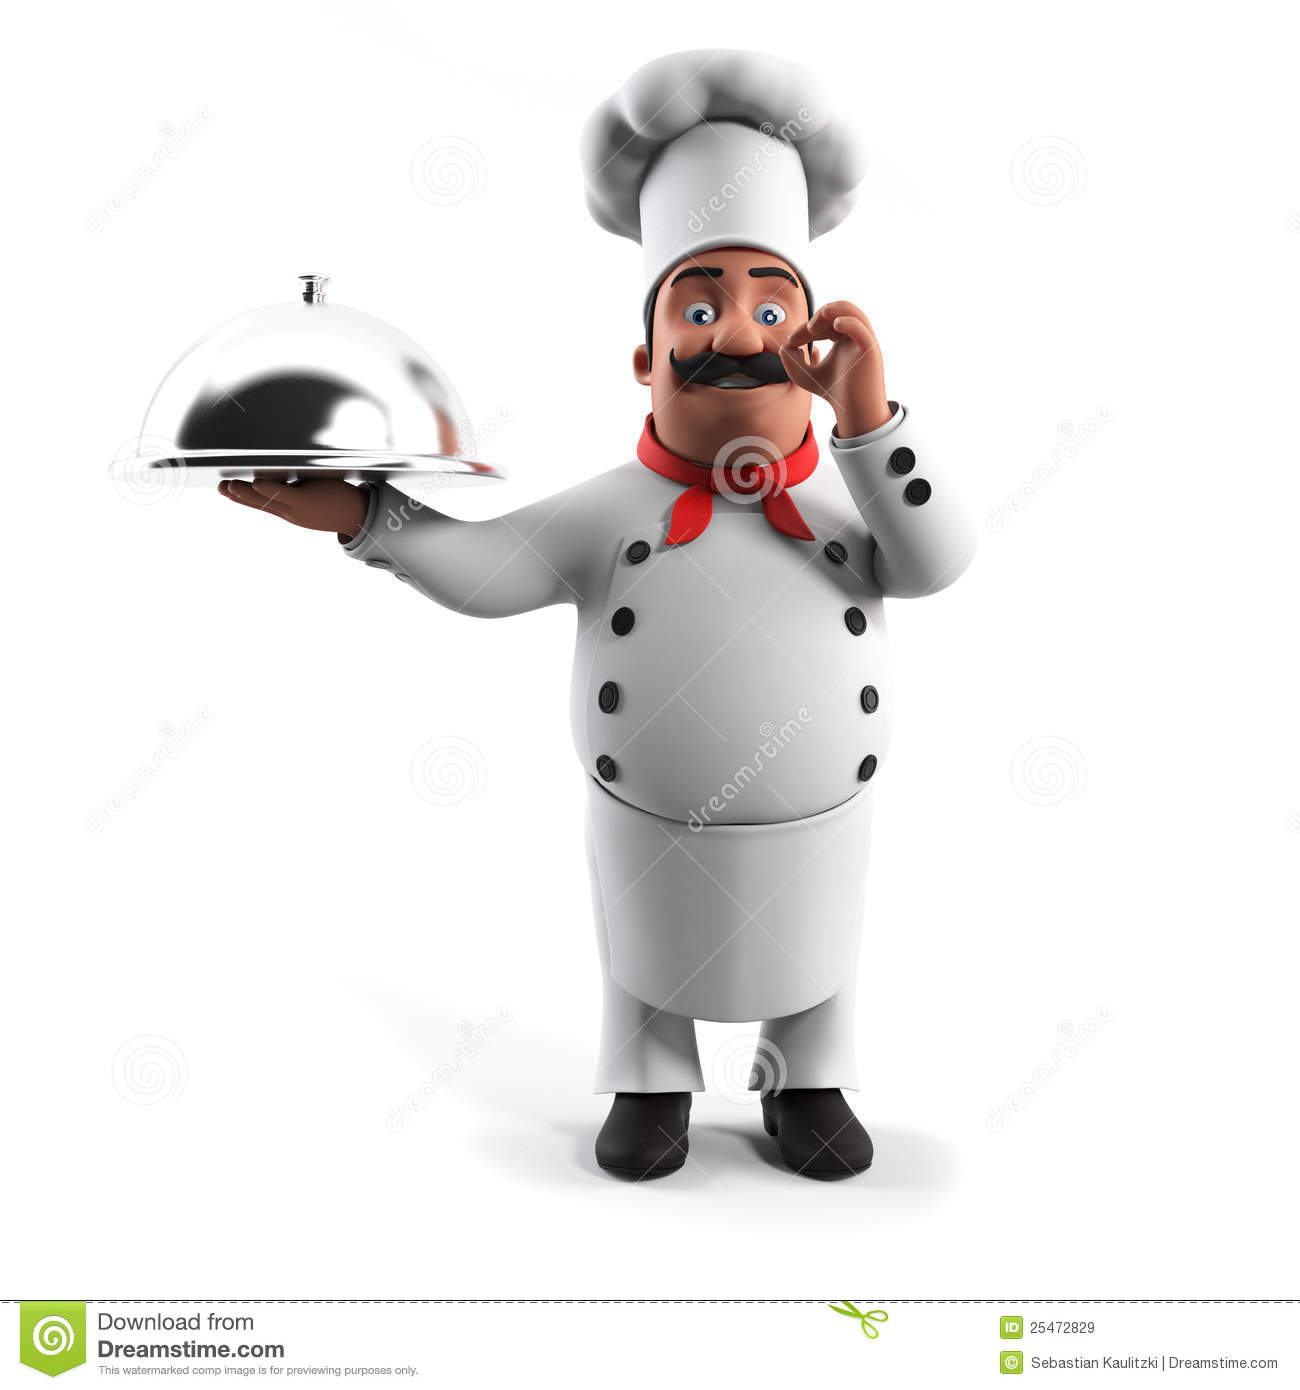 Grappige Keuken Funny Kitchen Chef Stock Illustration. Illustration Of